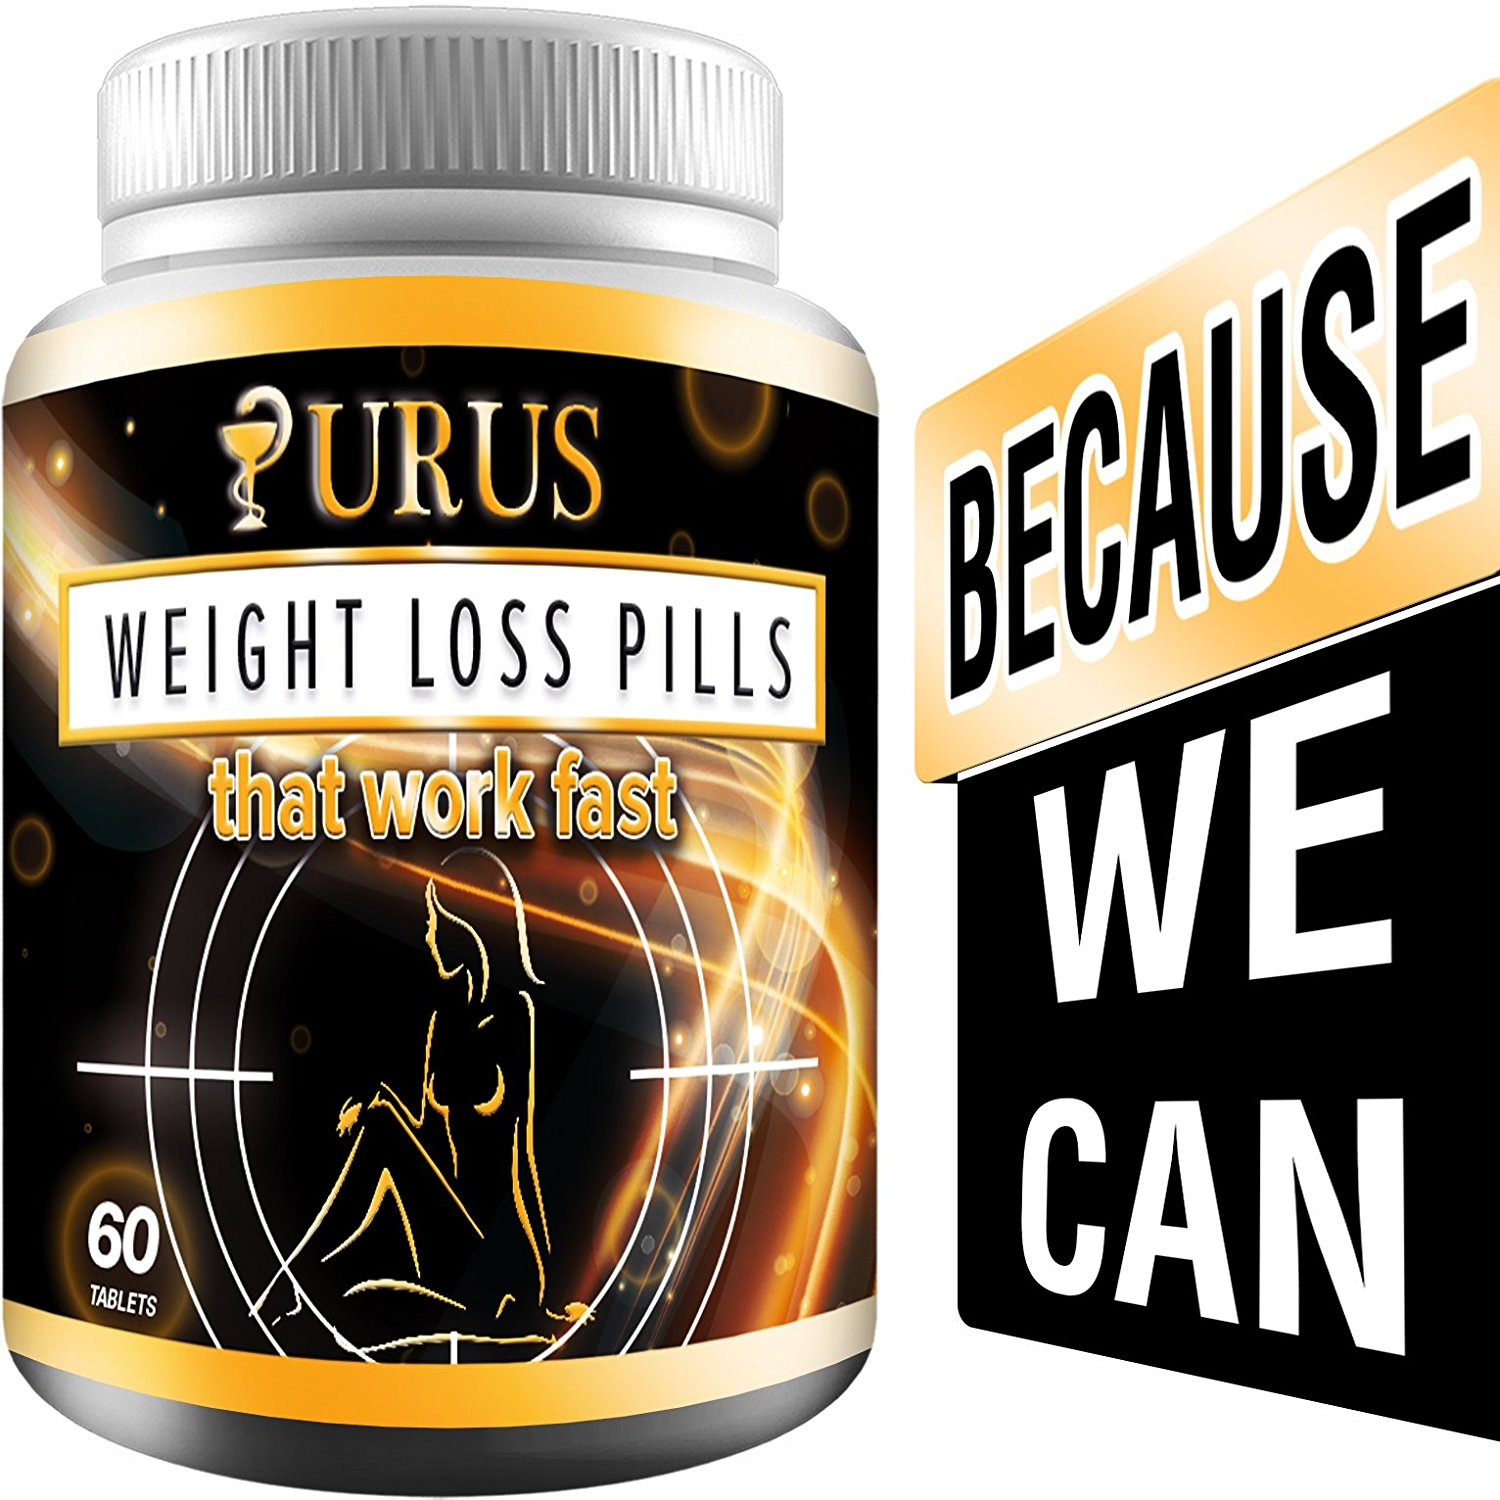 Urus Weight Loss Pills That Work Fast For Women Diet